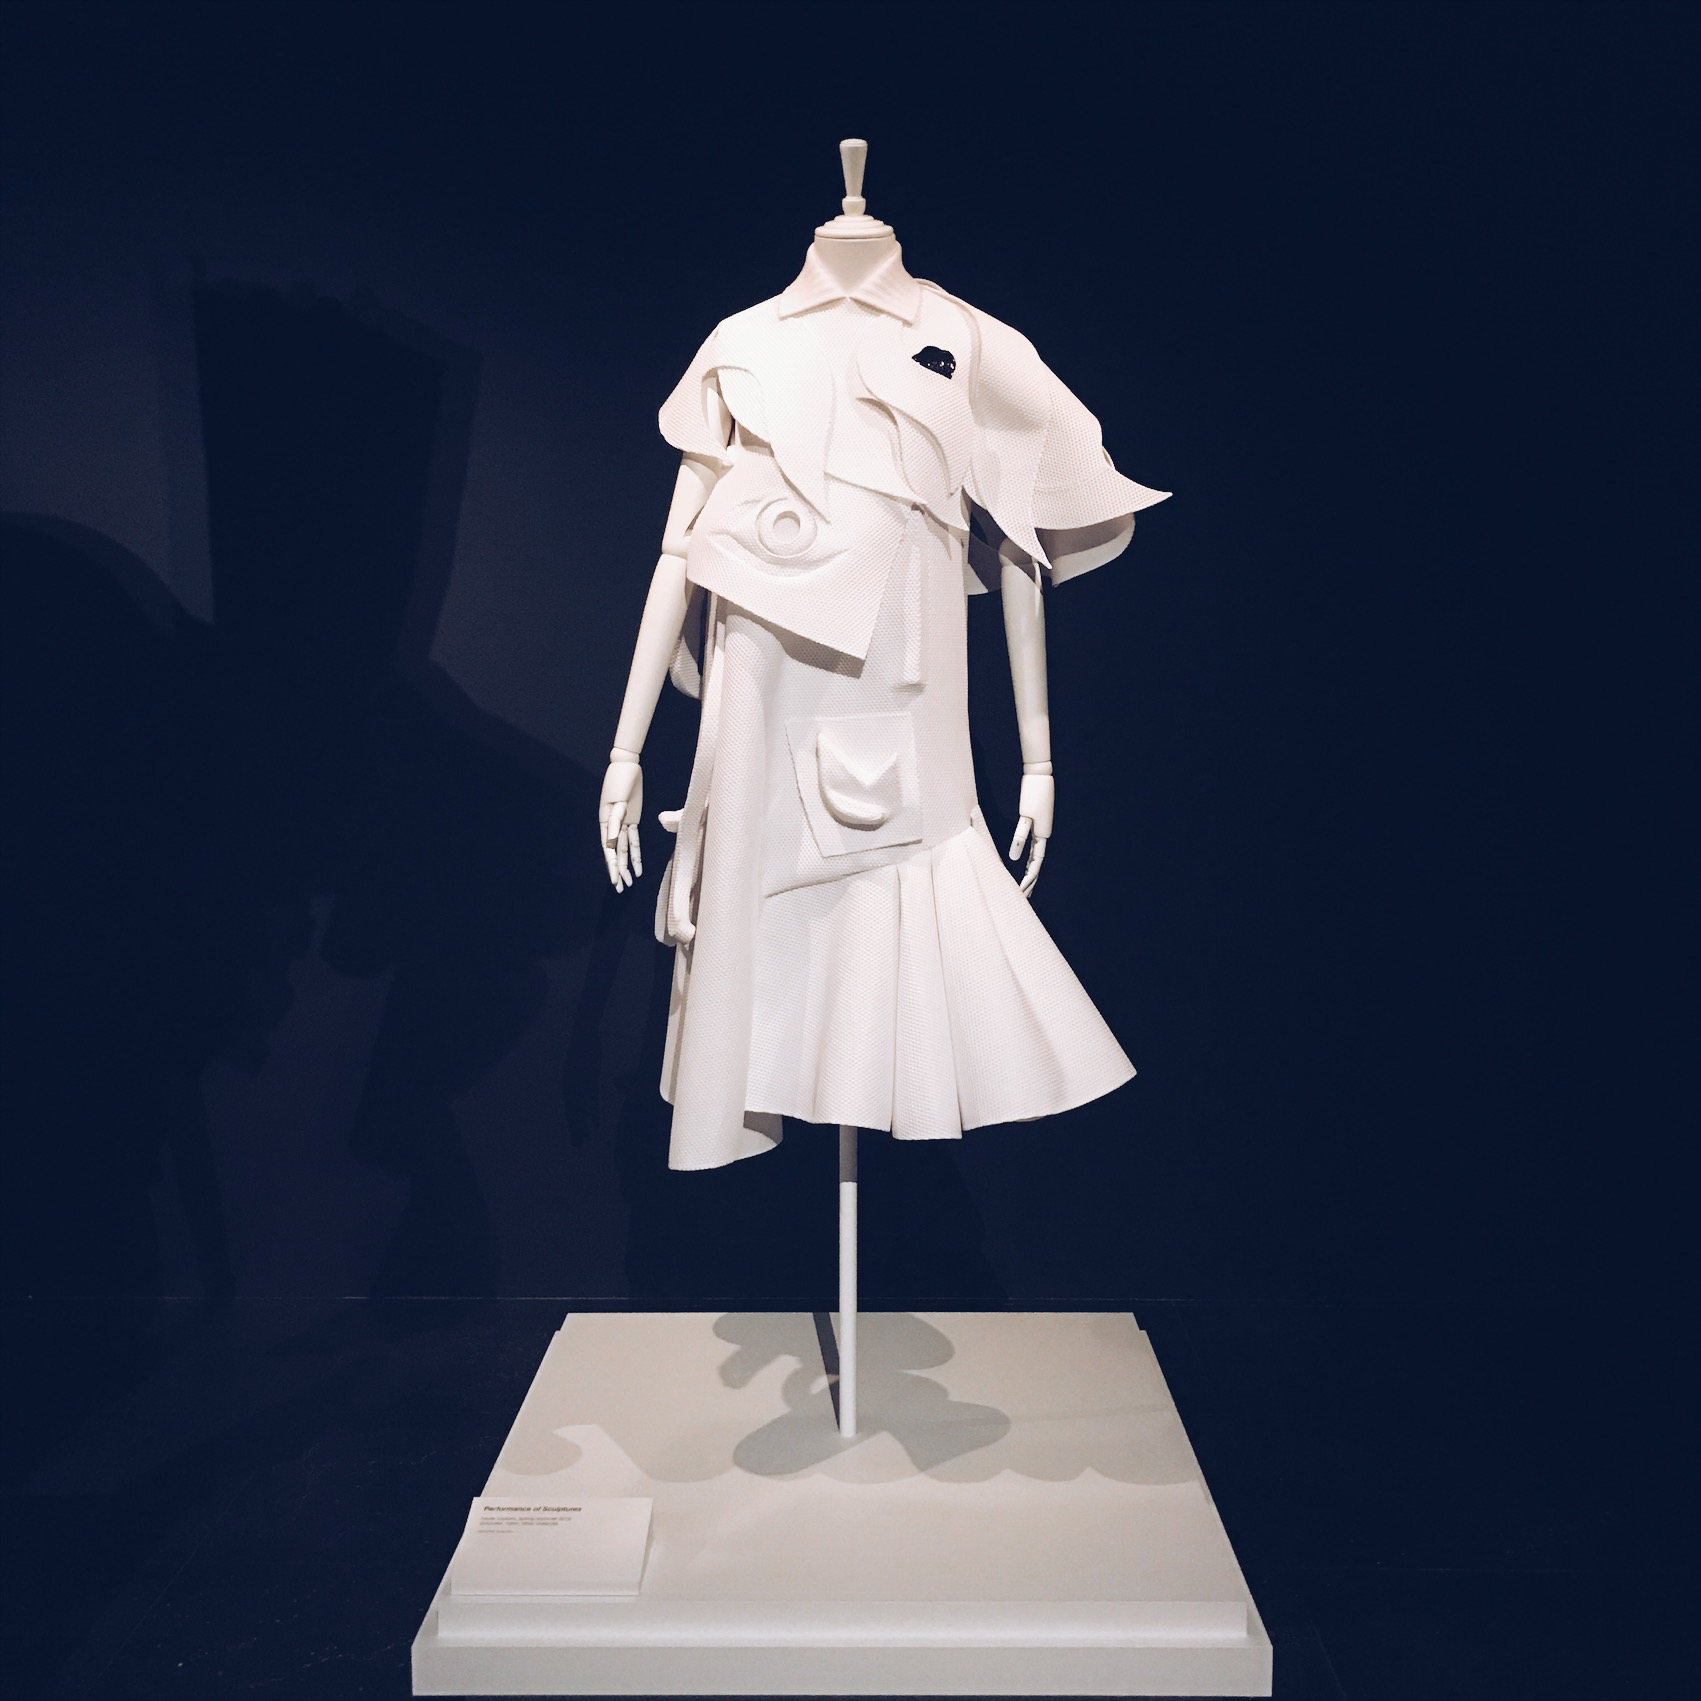 An all white gown made of Piqué, image Ms Amy Farrell